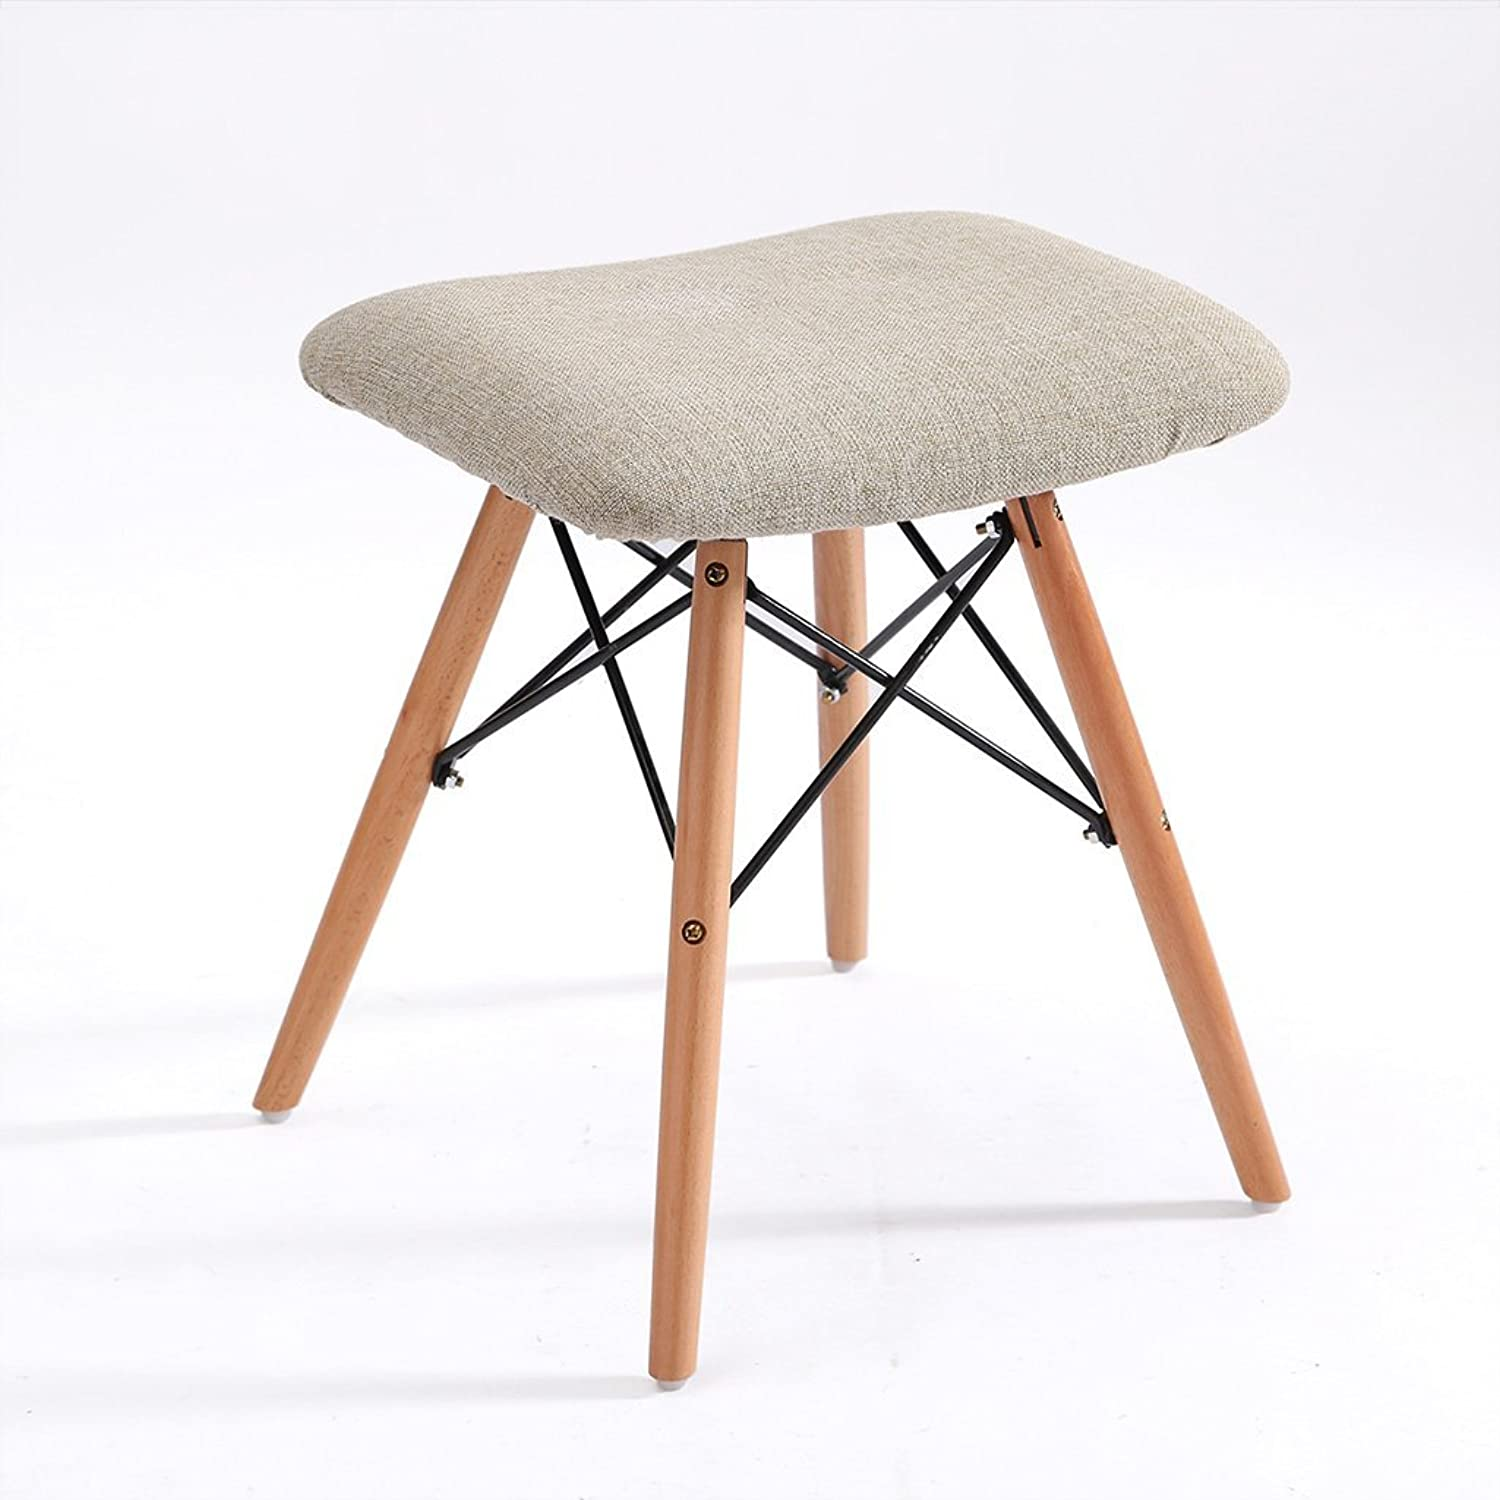 AIDELAI Bar Stool Chair- Stool Solid Wood Stool Fabric Removable Washable Chairs Casual Computer Chairs Home Stool Saddle Seat (color   A)